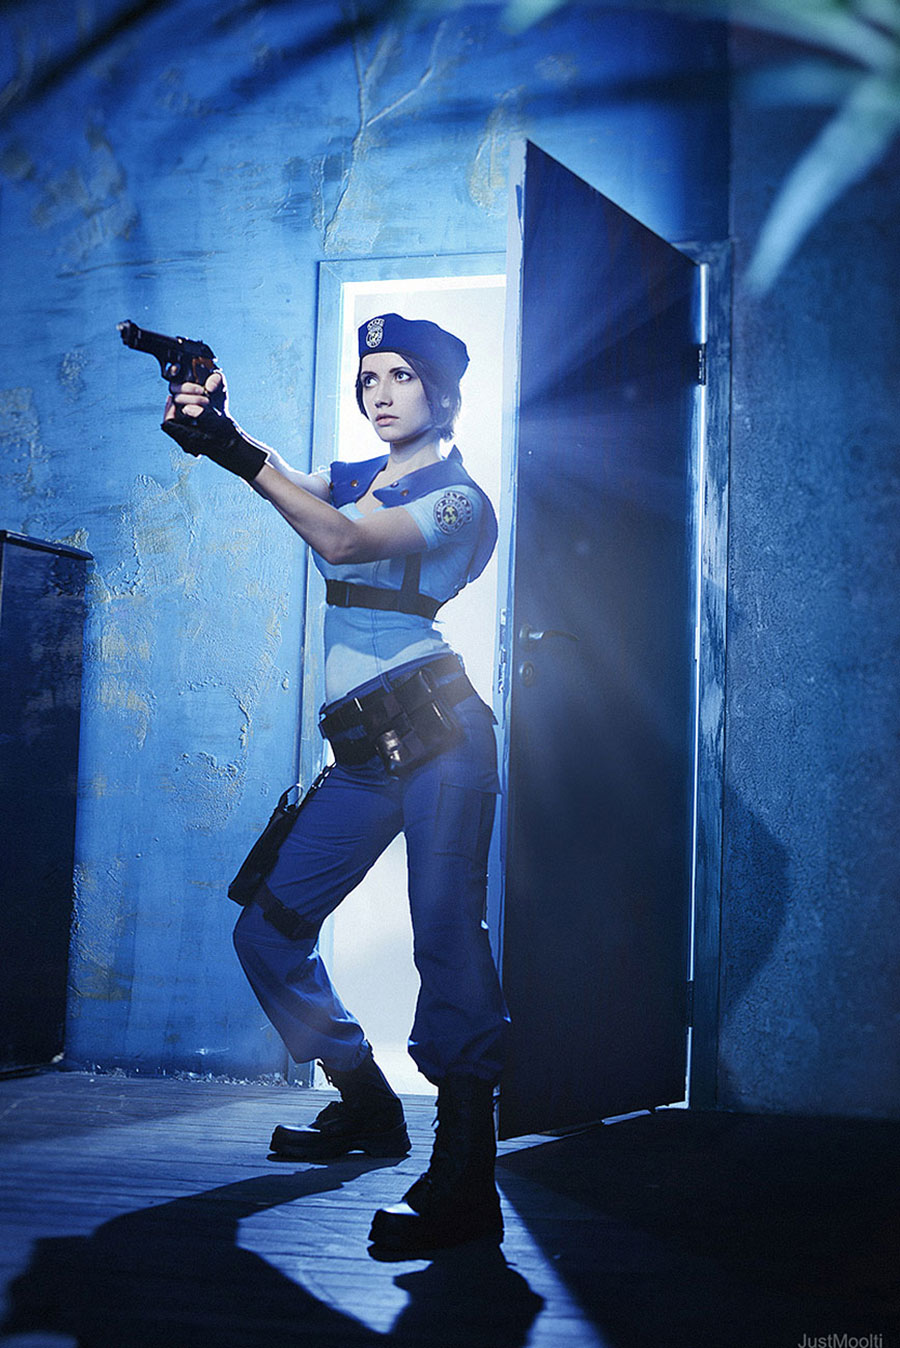 Jill Valentine investigates a series of bizarre murders in Resident Evil cosplay